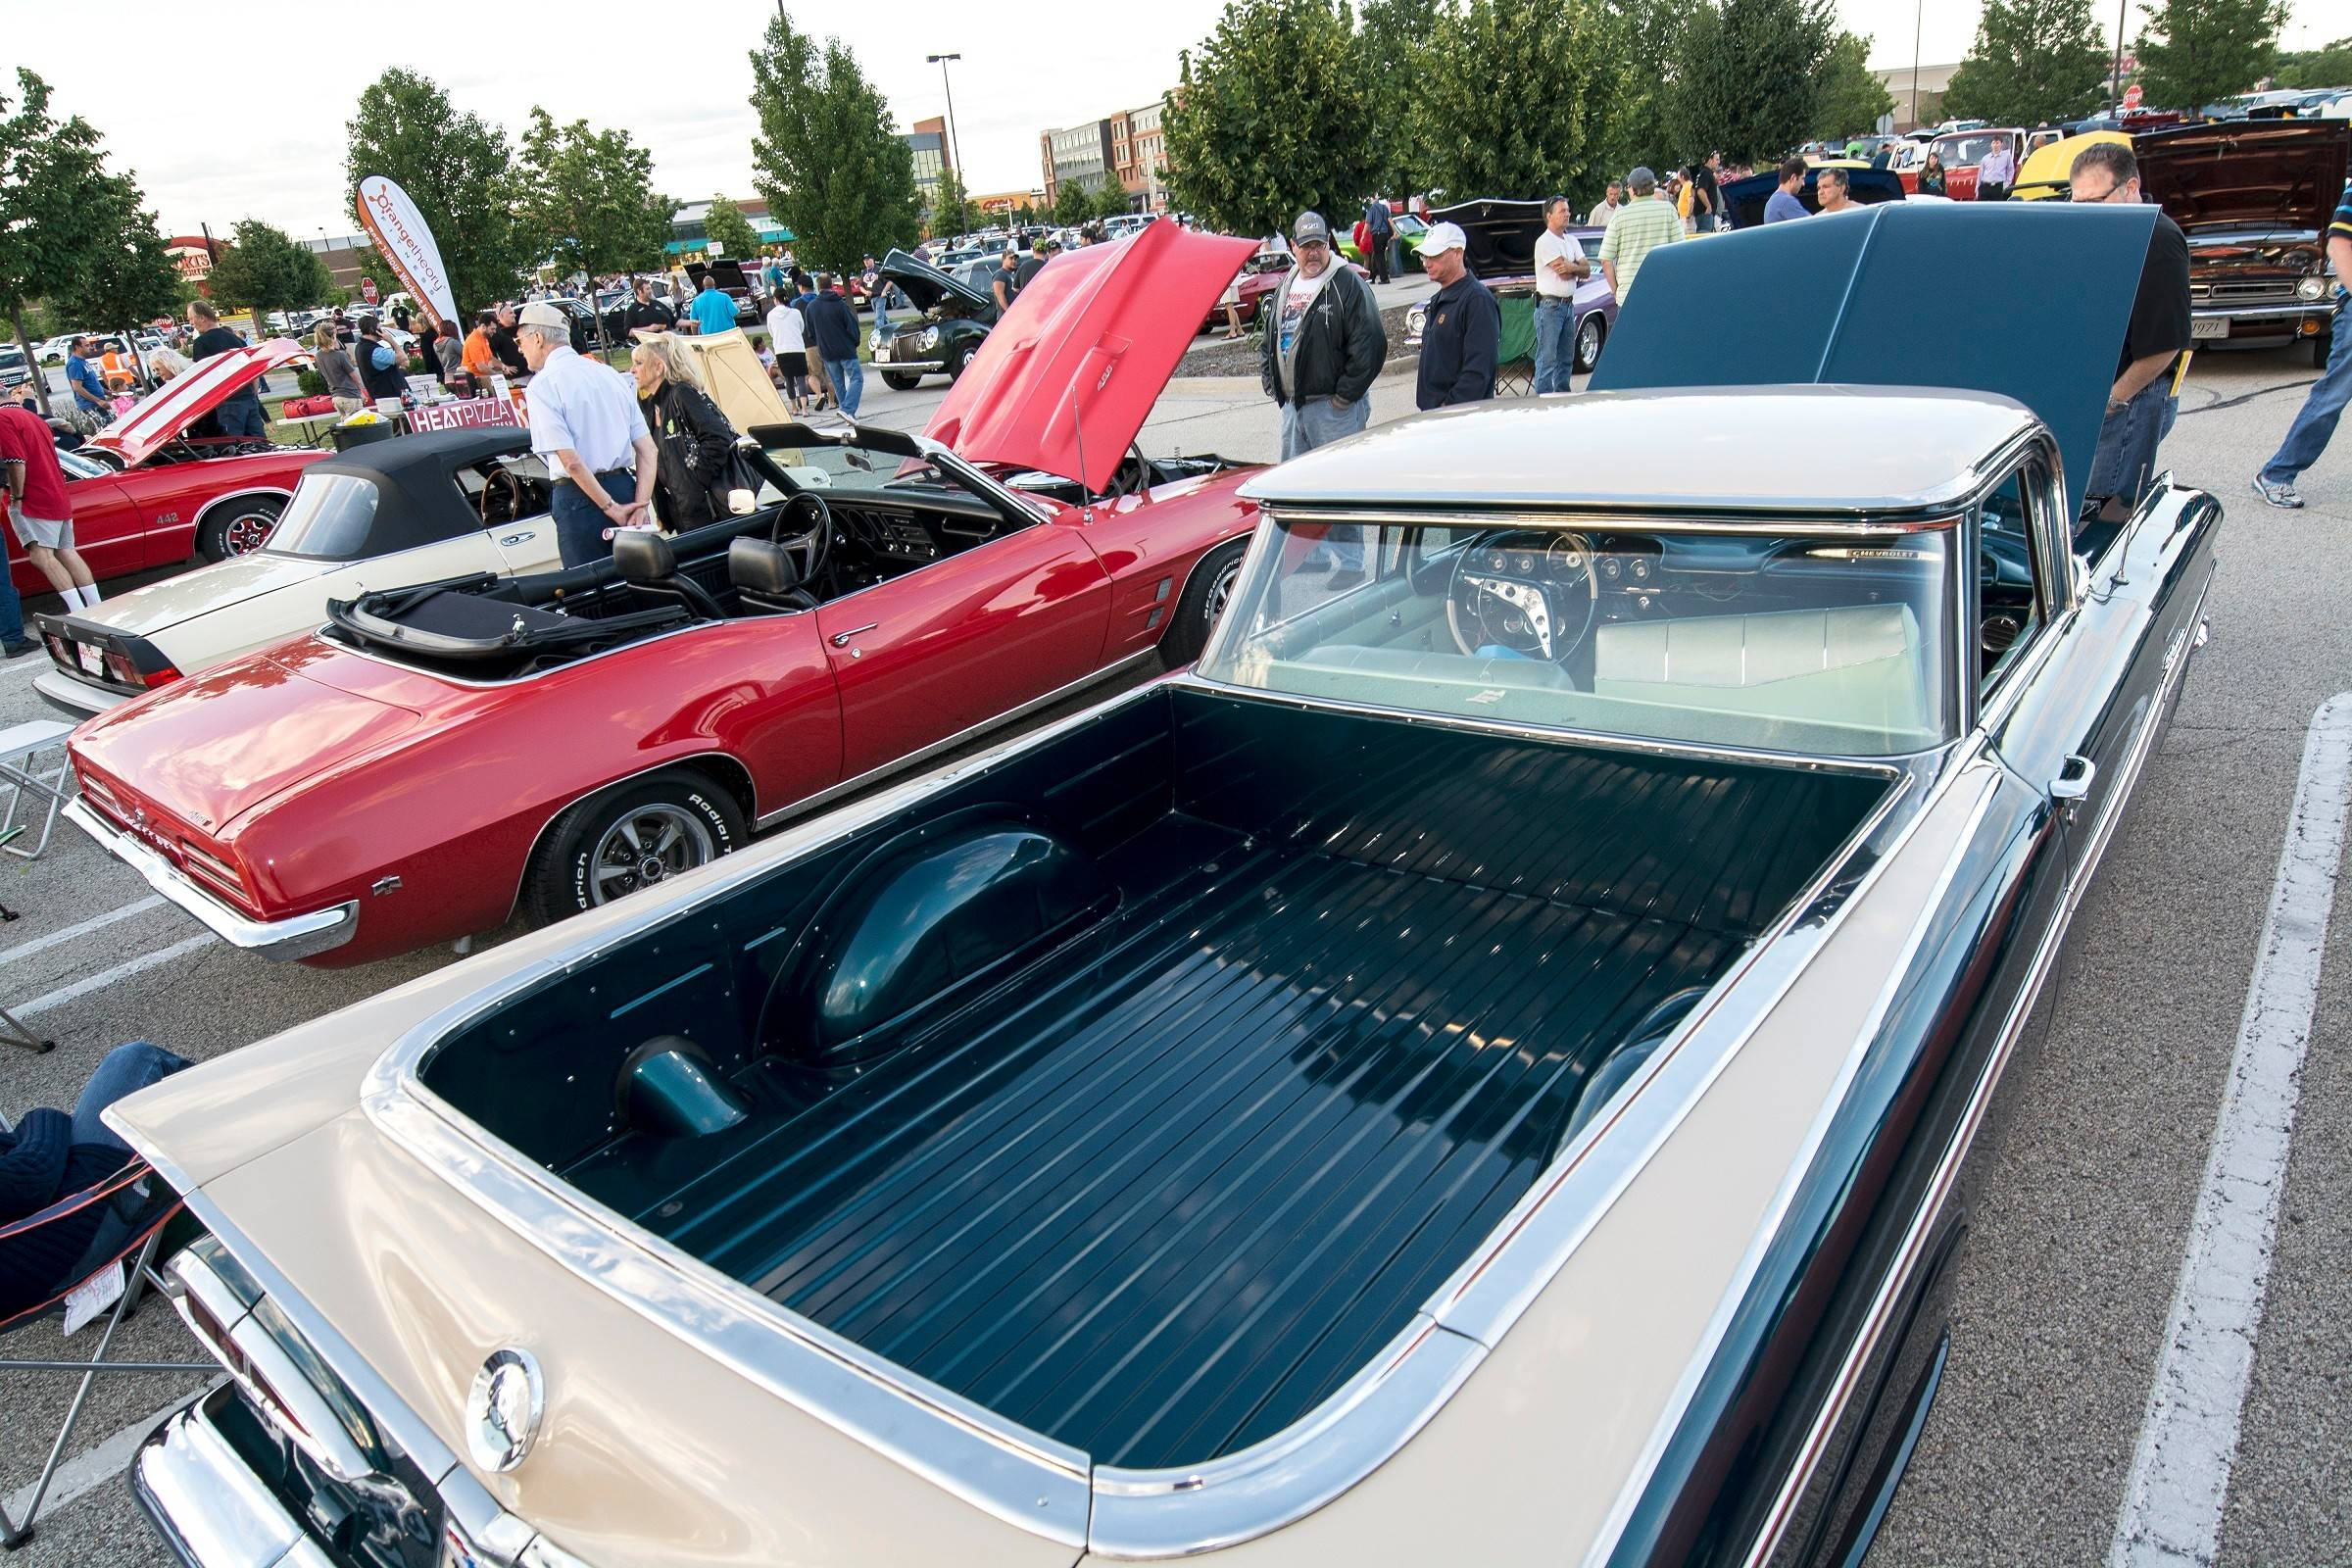 The Randhurst Village show's wide variety of automobiles pleased spectators.